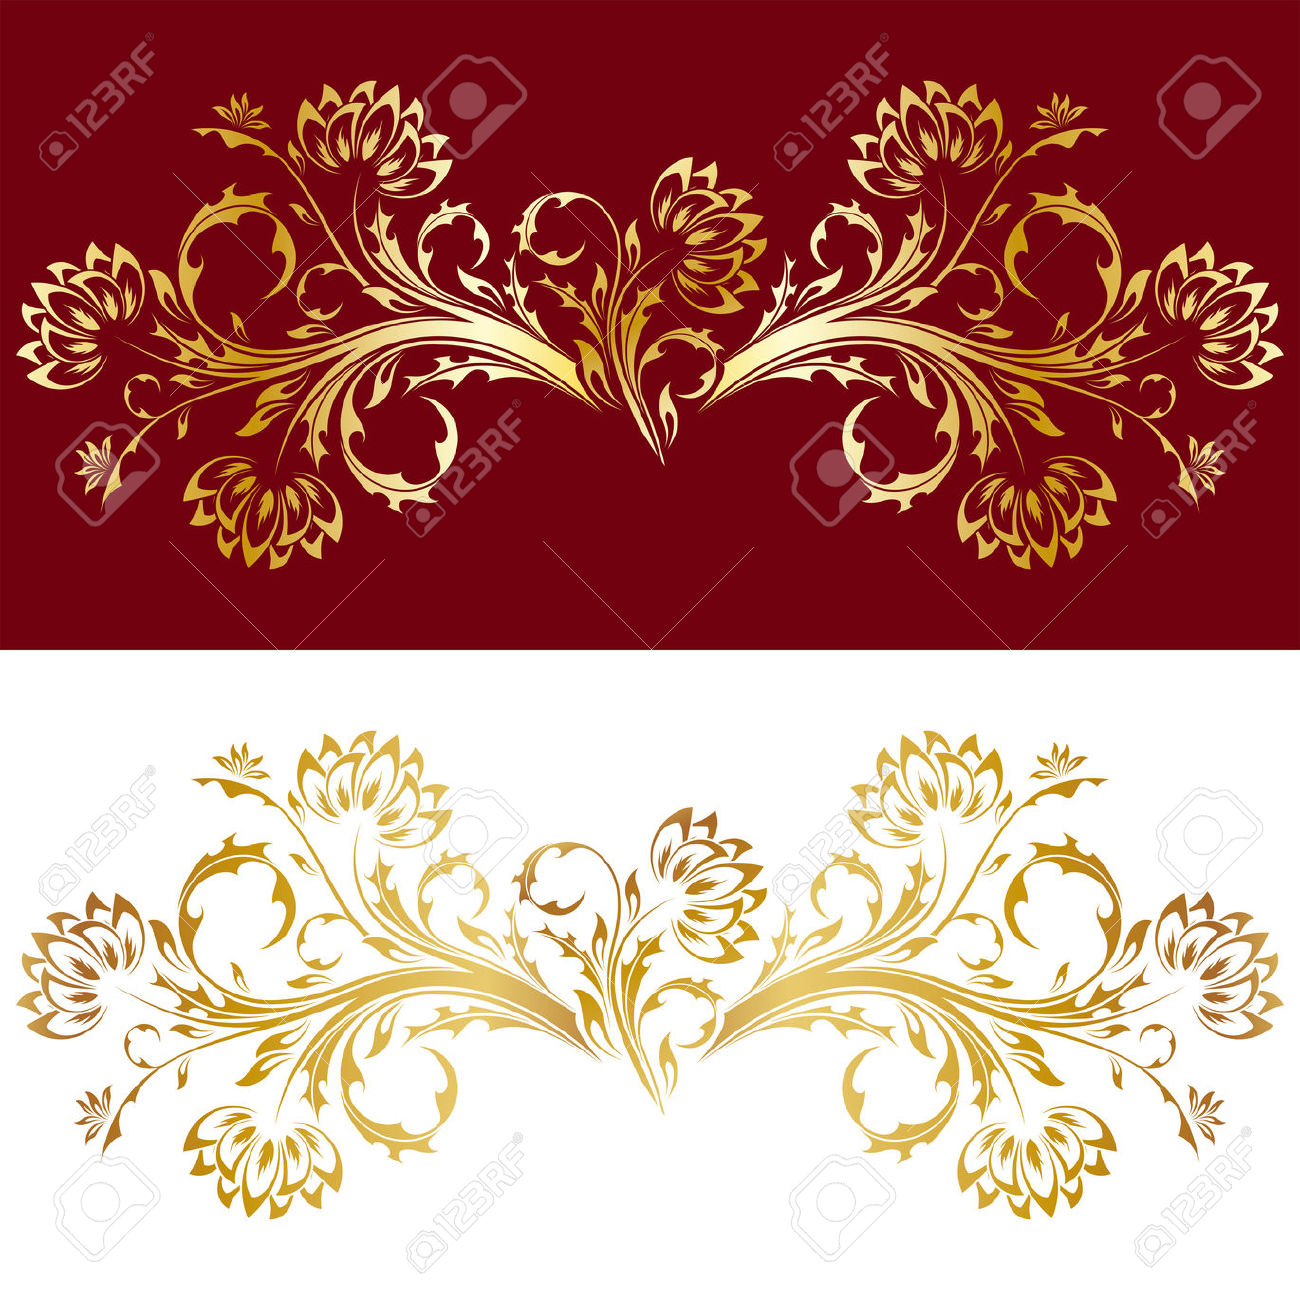 Abstract Old Style Ornament With Flowers In Gold Color Royalty.